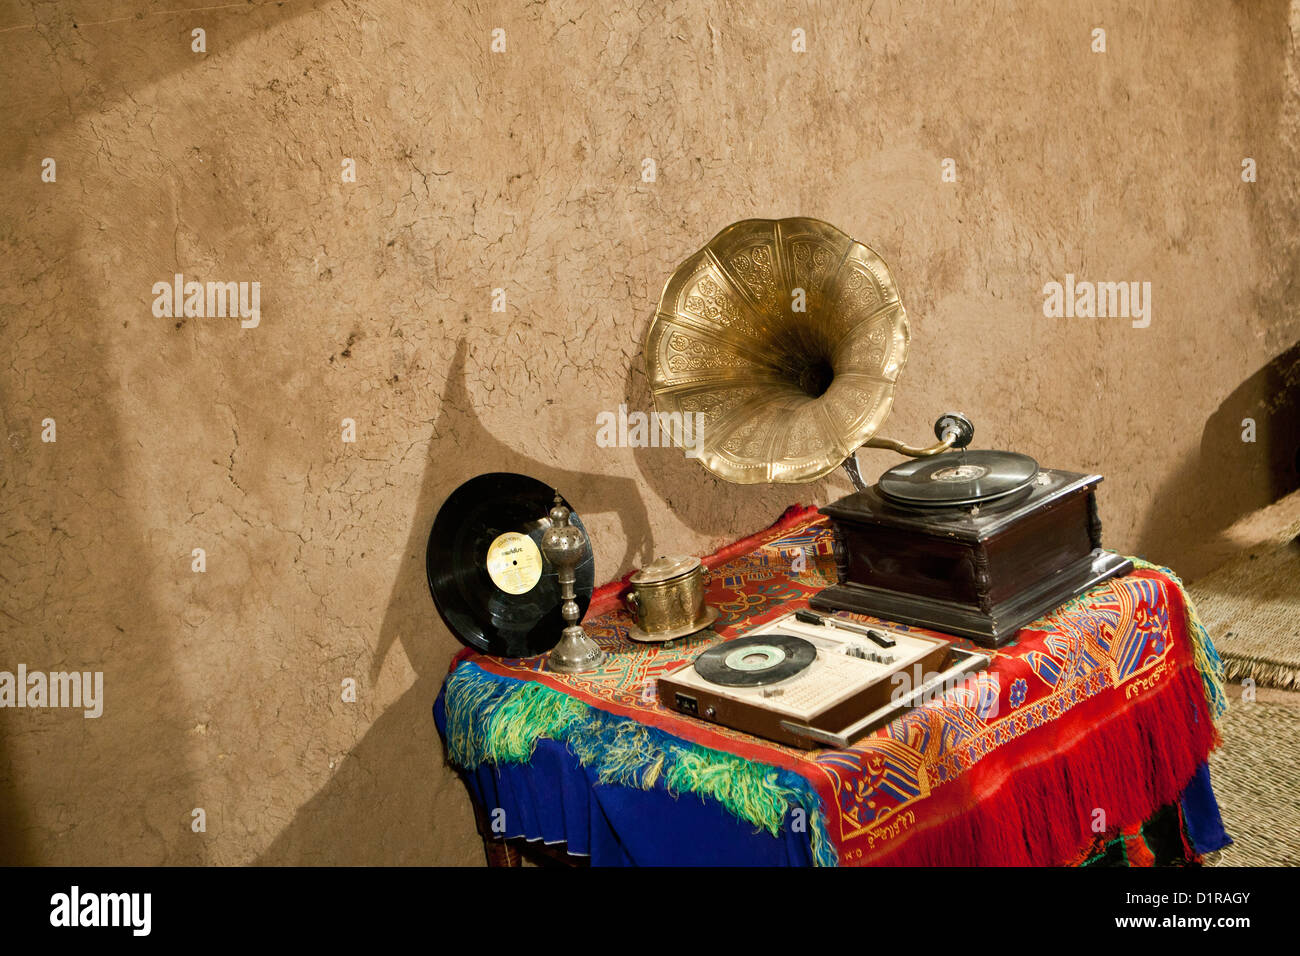 Morocco, near Zagora, kasbah Ziwane. Museum of Arts and Traditions from Draa Valley. - Stock Image